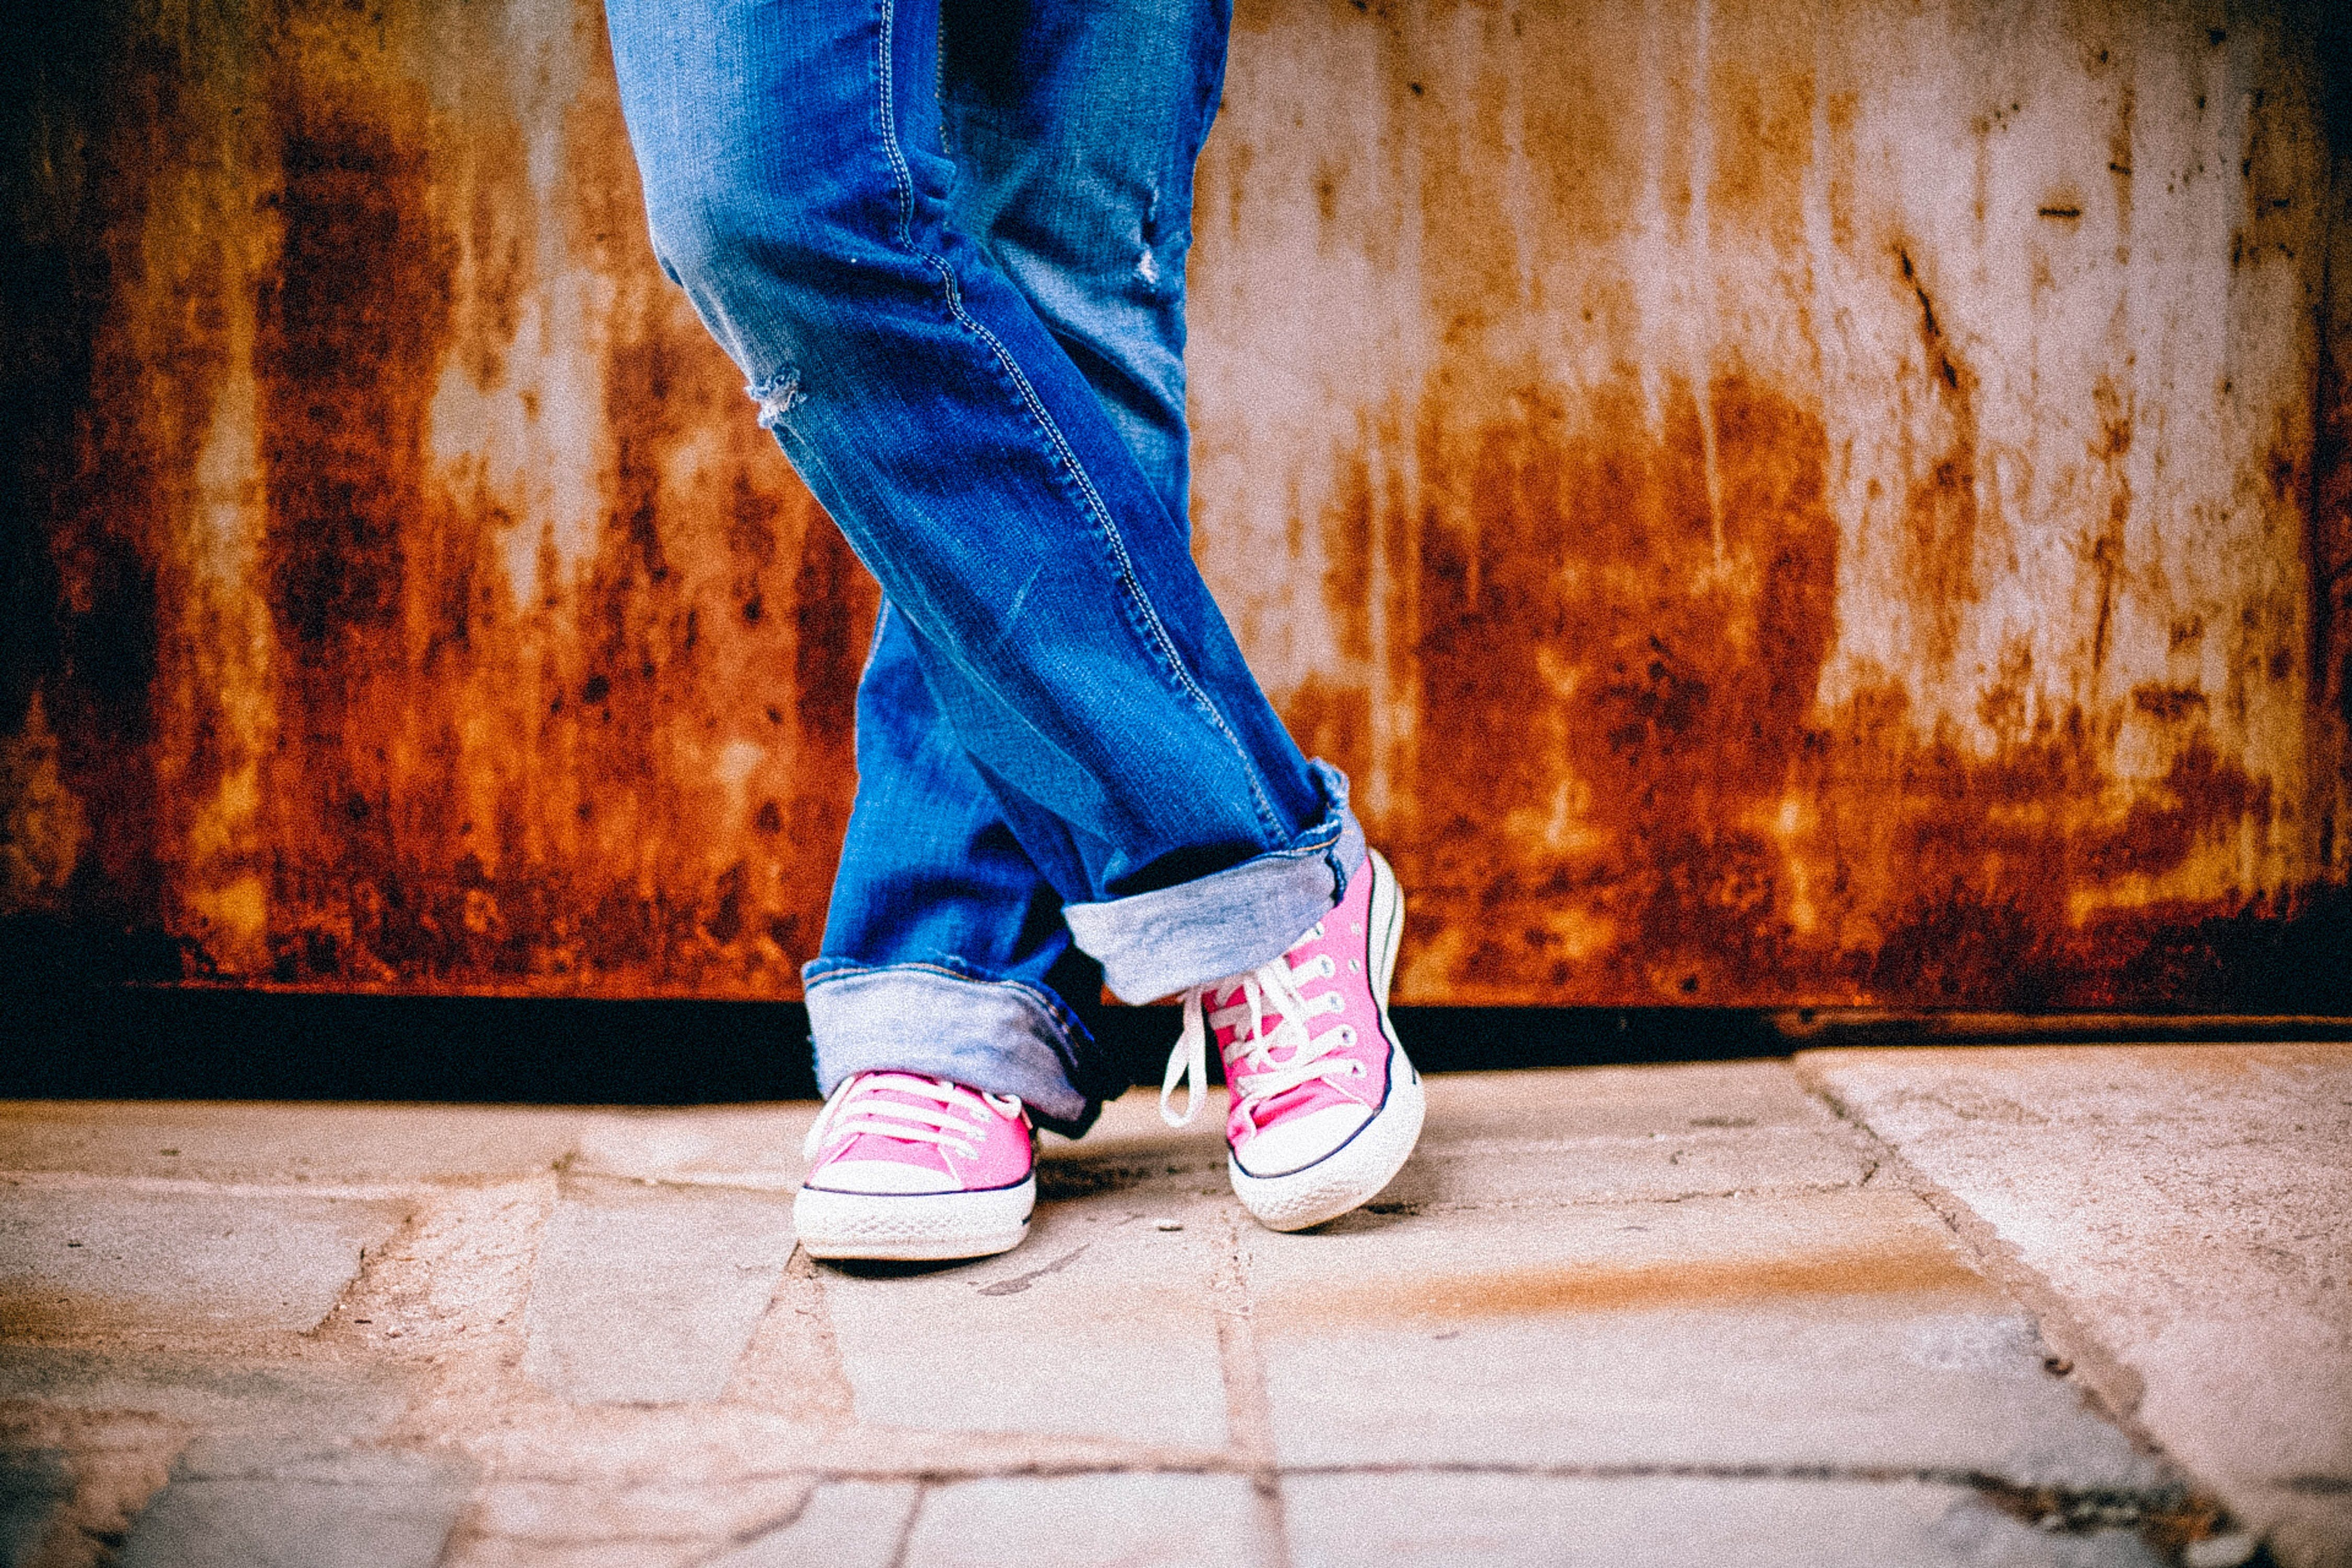 Person in Blue Jeans and Pink White Converse All Star Sneakers